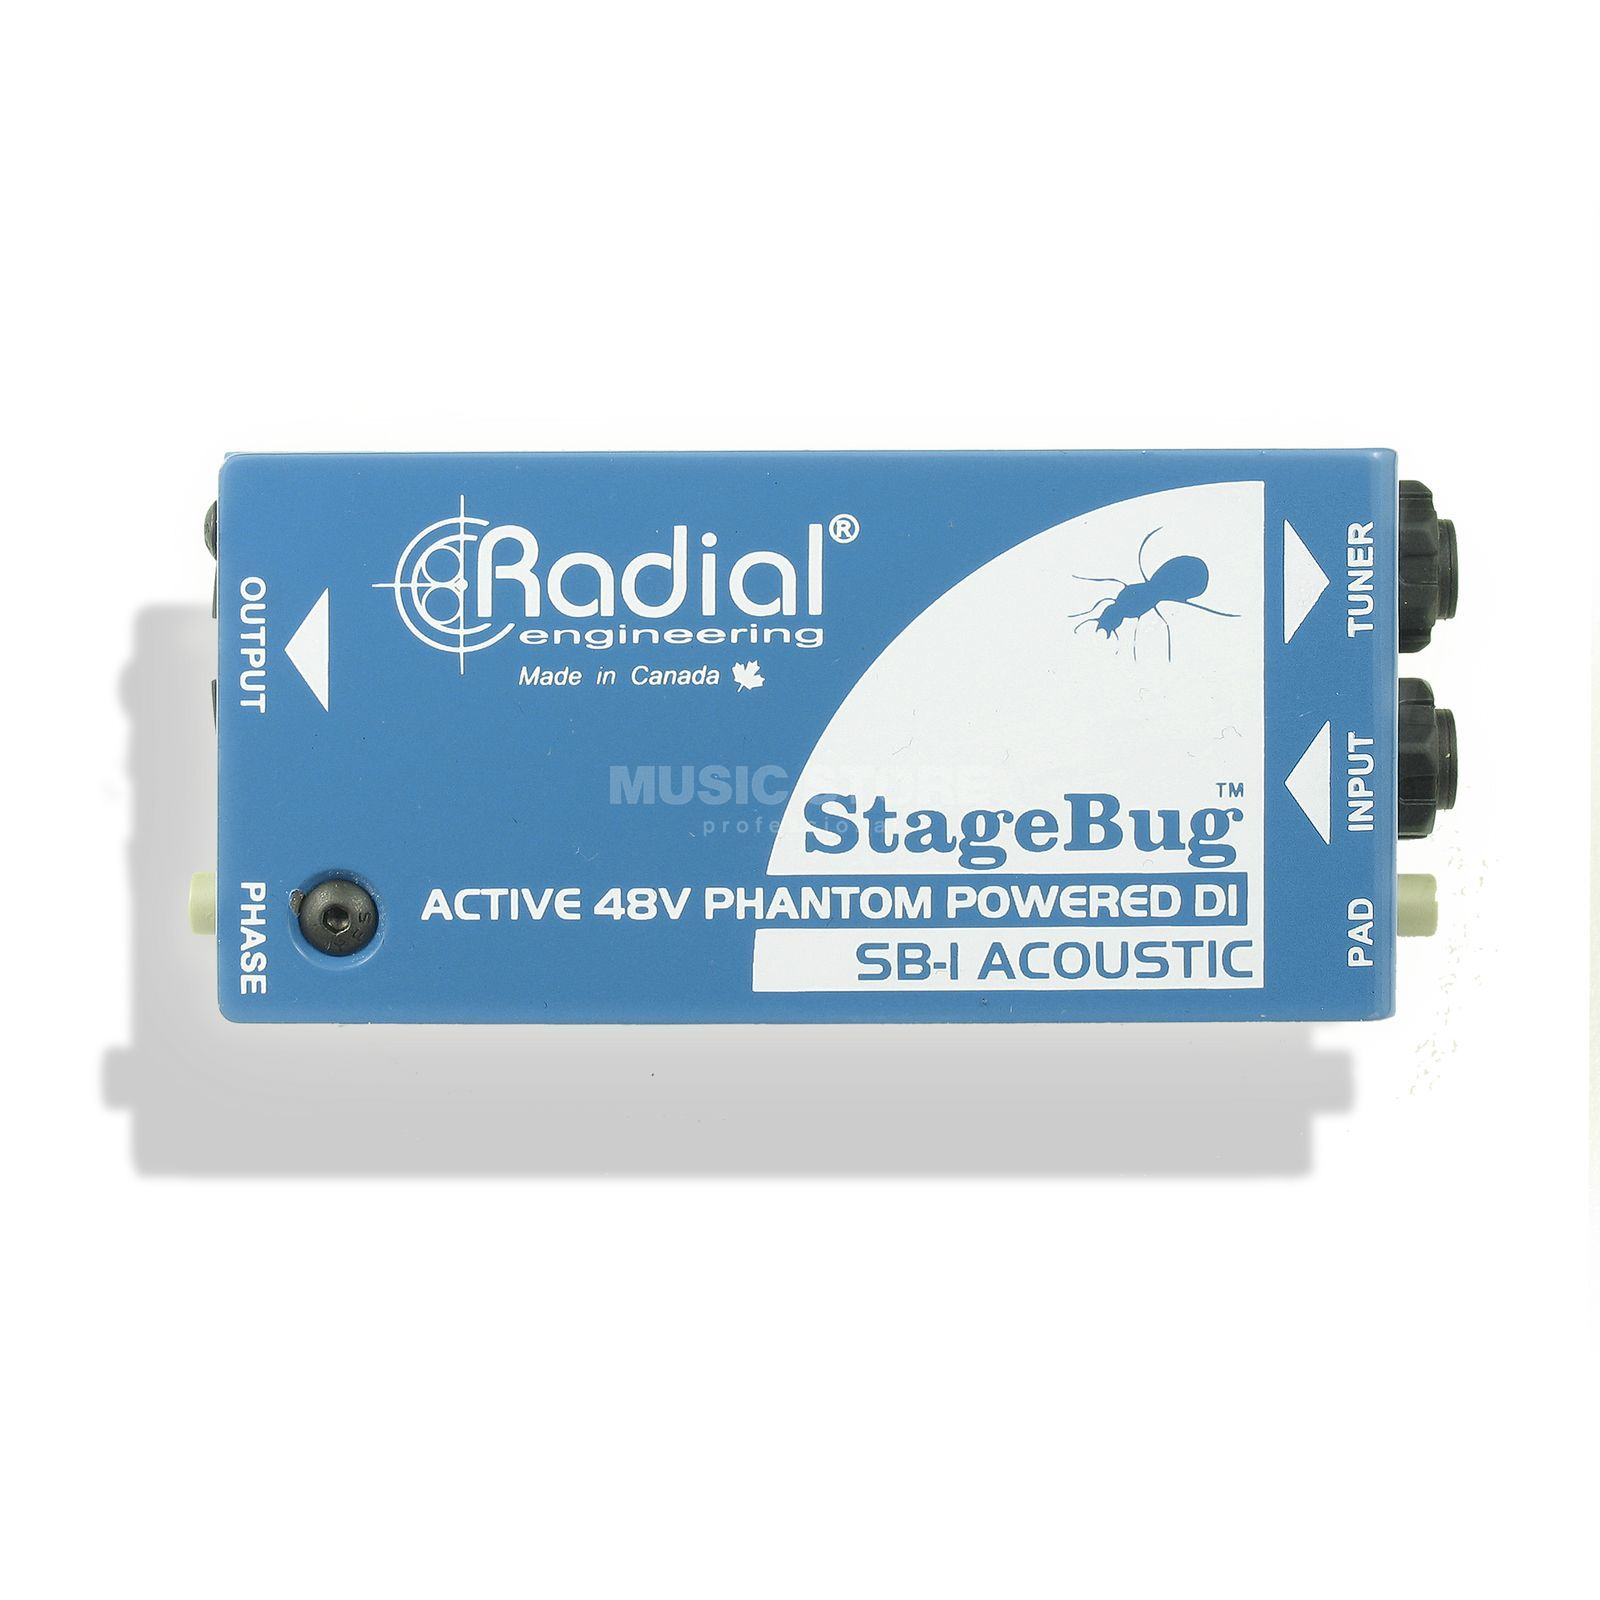 Radial StageBug SB-1 Acoustic aktive DI Box Produktbild